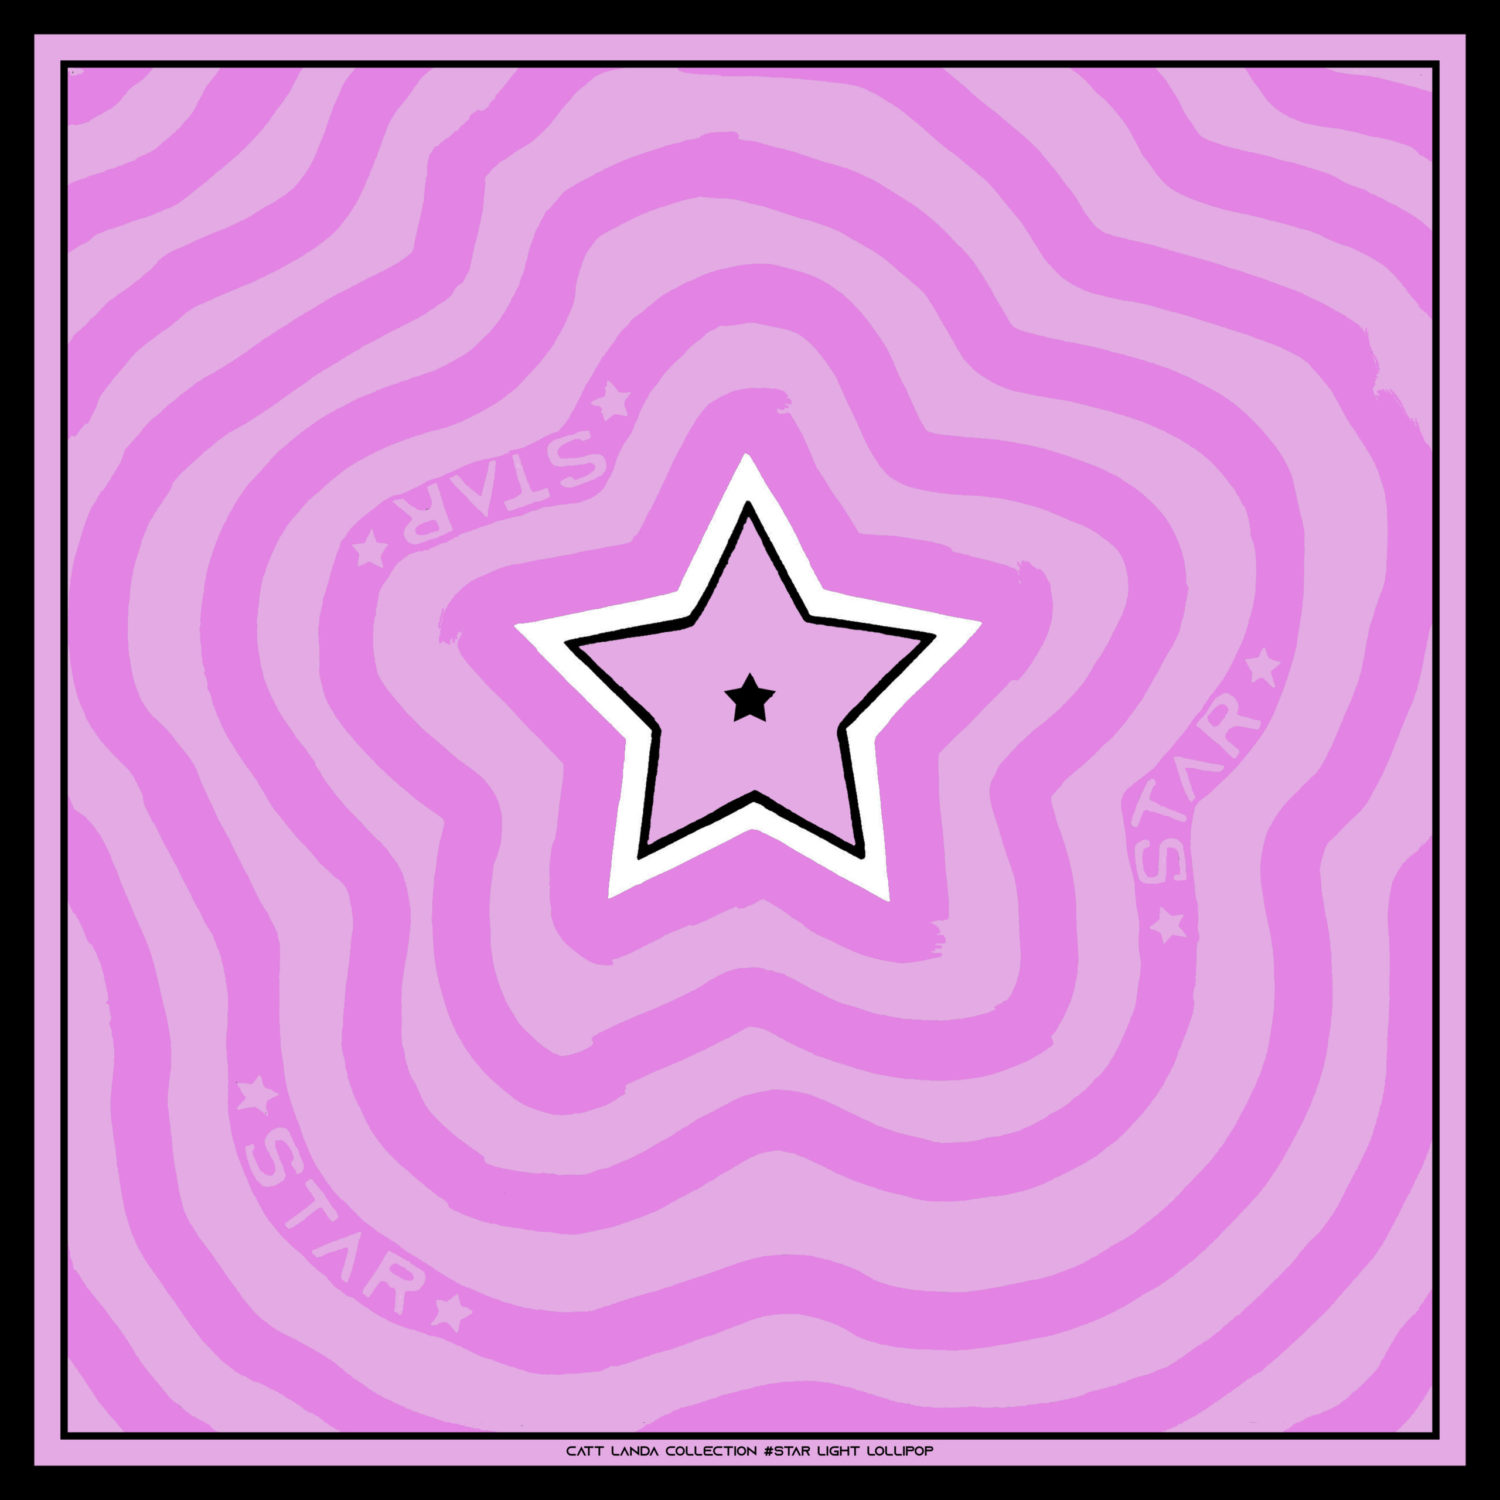 STAR Light Lollipop